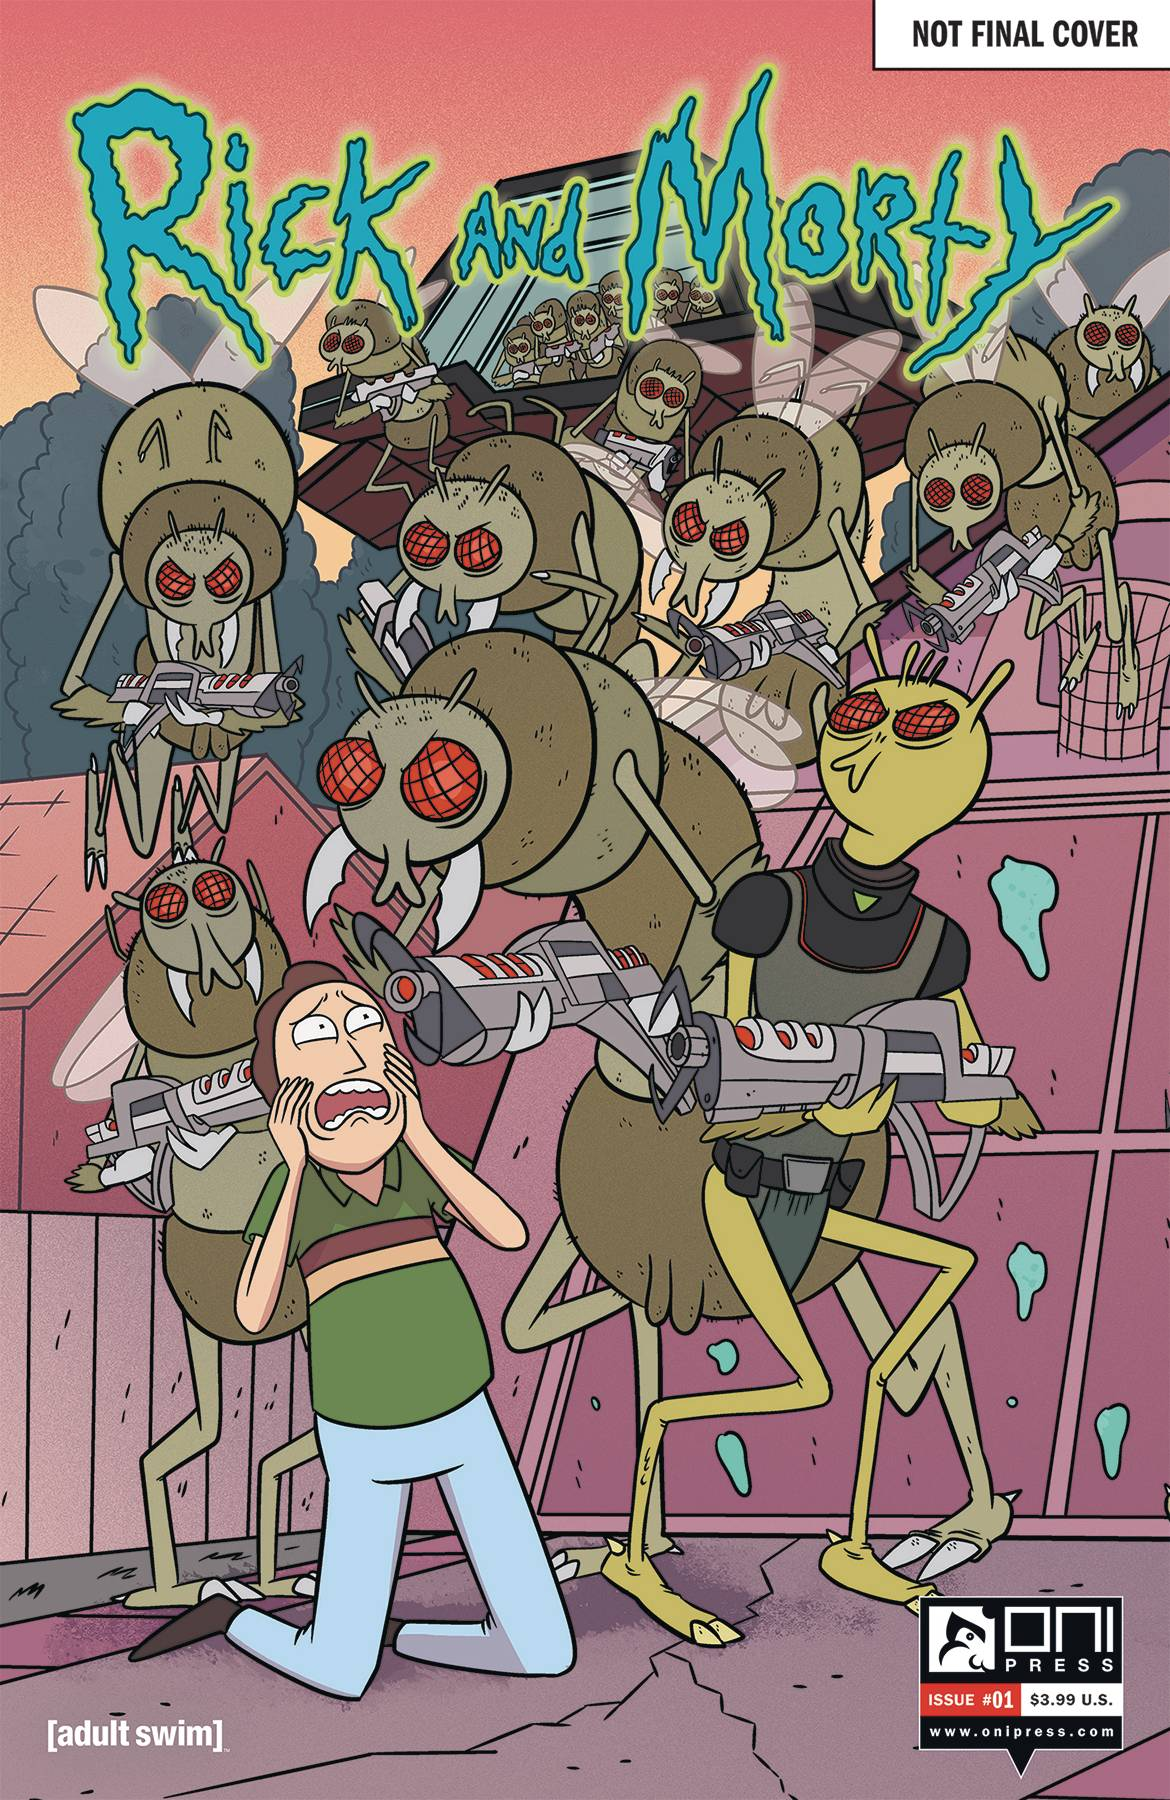 RICK & MORTY 1 50 ISSUES SPECIAL VAR.jpg